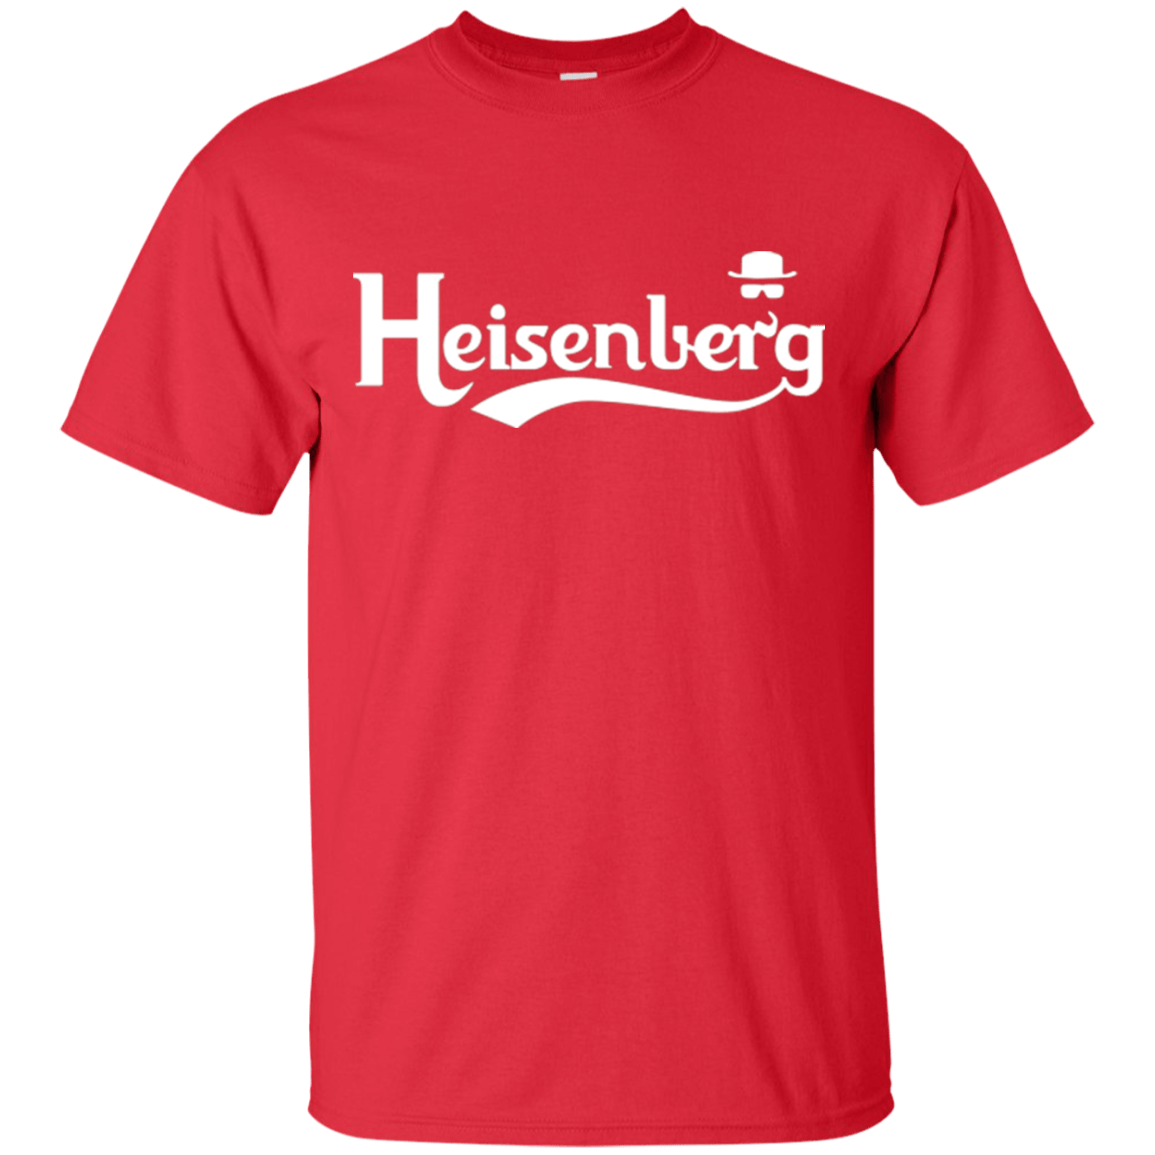 T-Shirts Red / Small Heisenberg (1) T-Shirt